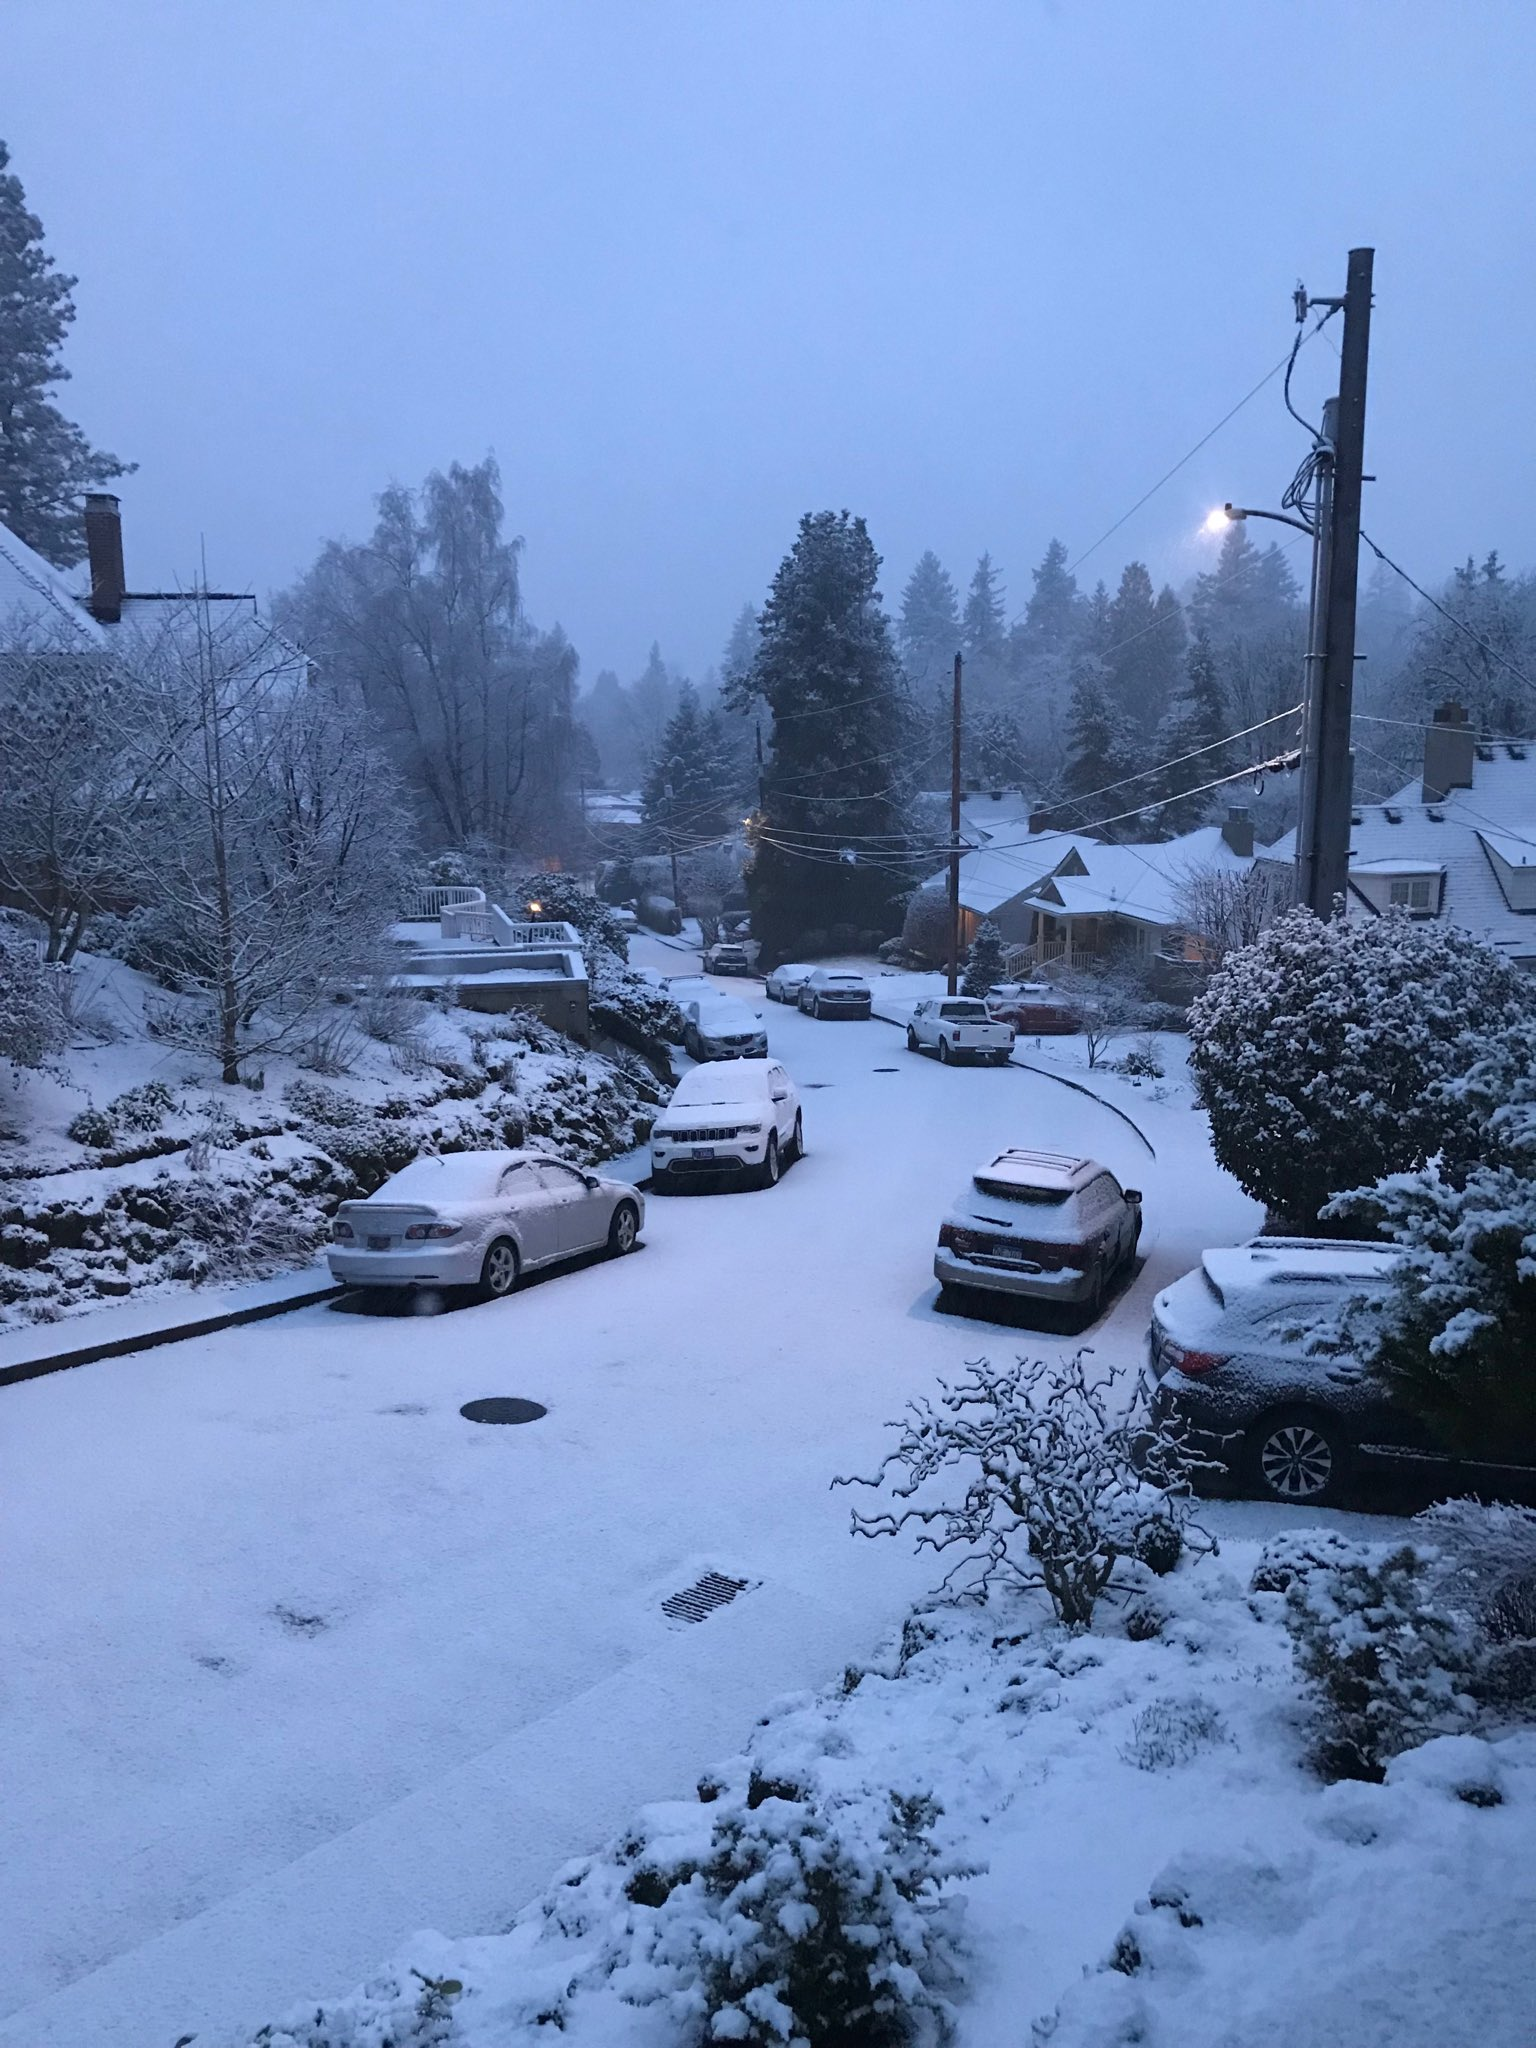 'We have snow coming down in Portland Heights' - Photo from Britney<p></p>